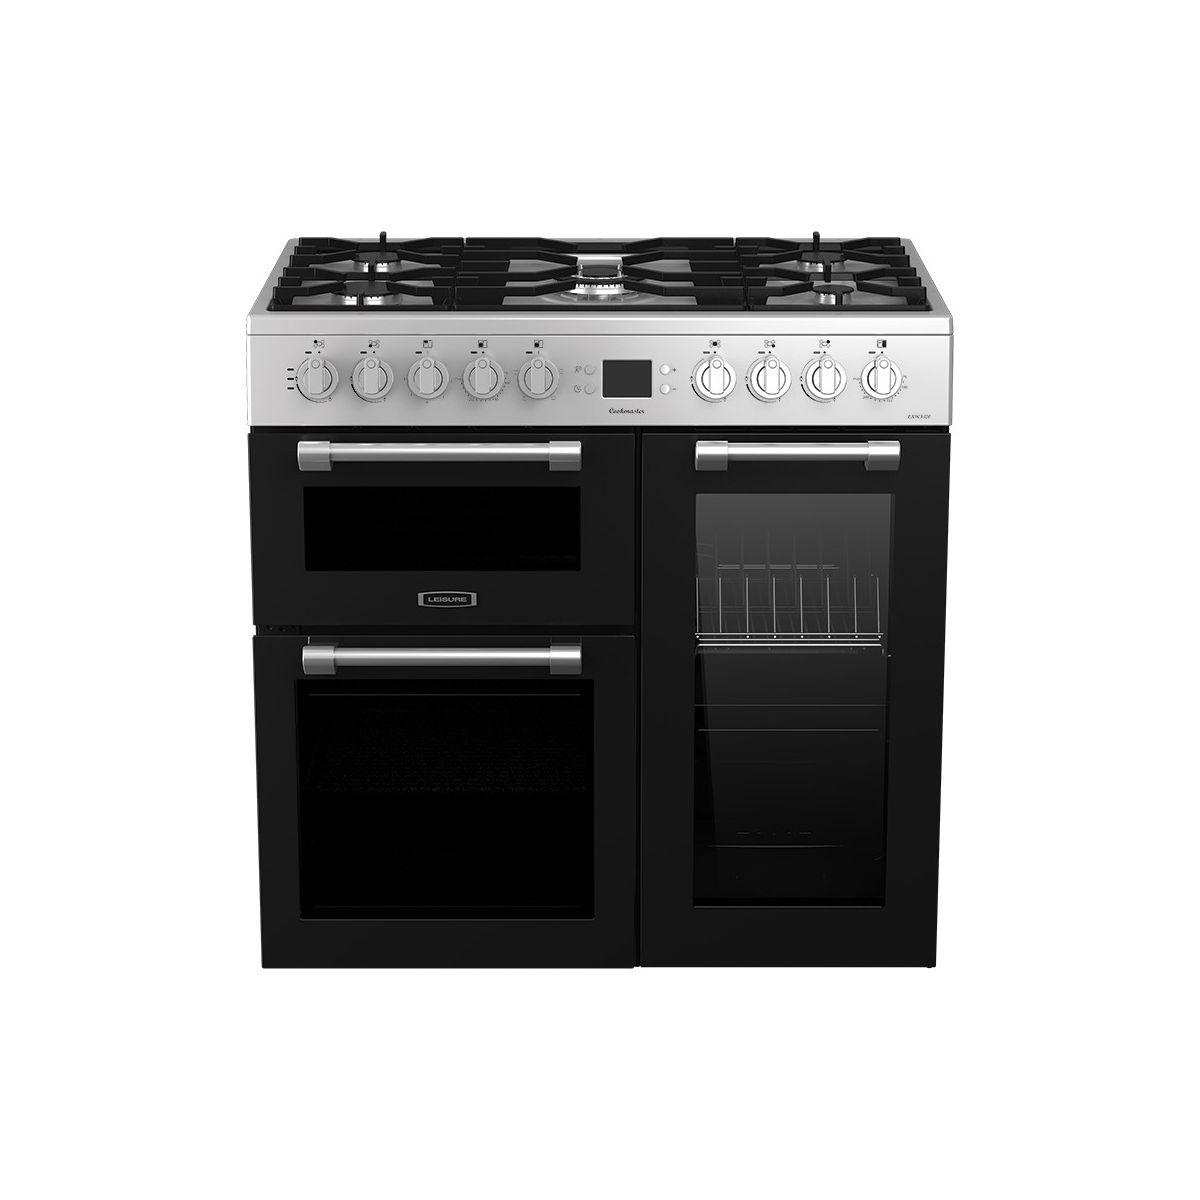 Piano de cuisson gaz leisure ck90f320xg (photo)